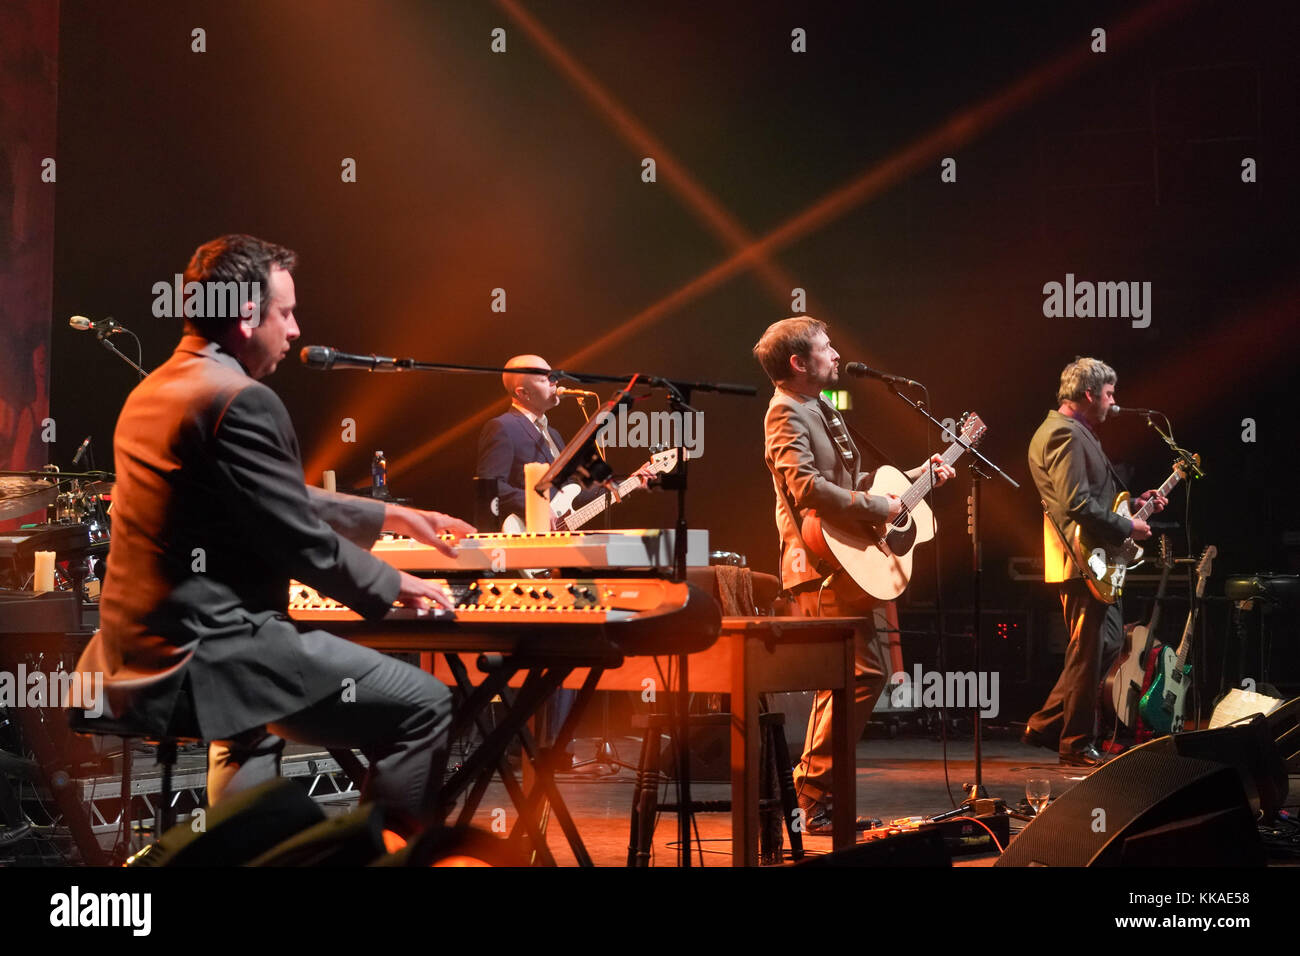 London, UK. 29th Nov, 2017. The Divine Comedy performing live on stage at the Hammersmith Apollo Eventim in London. - Stock Image